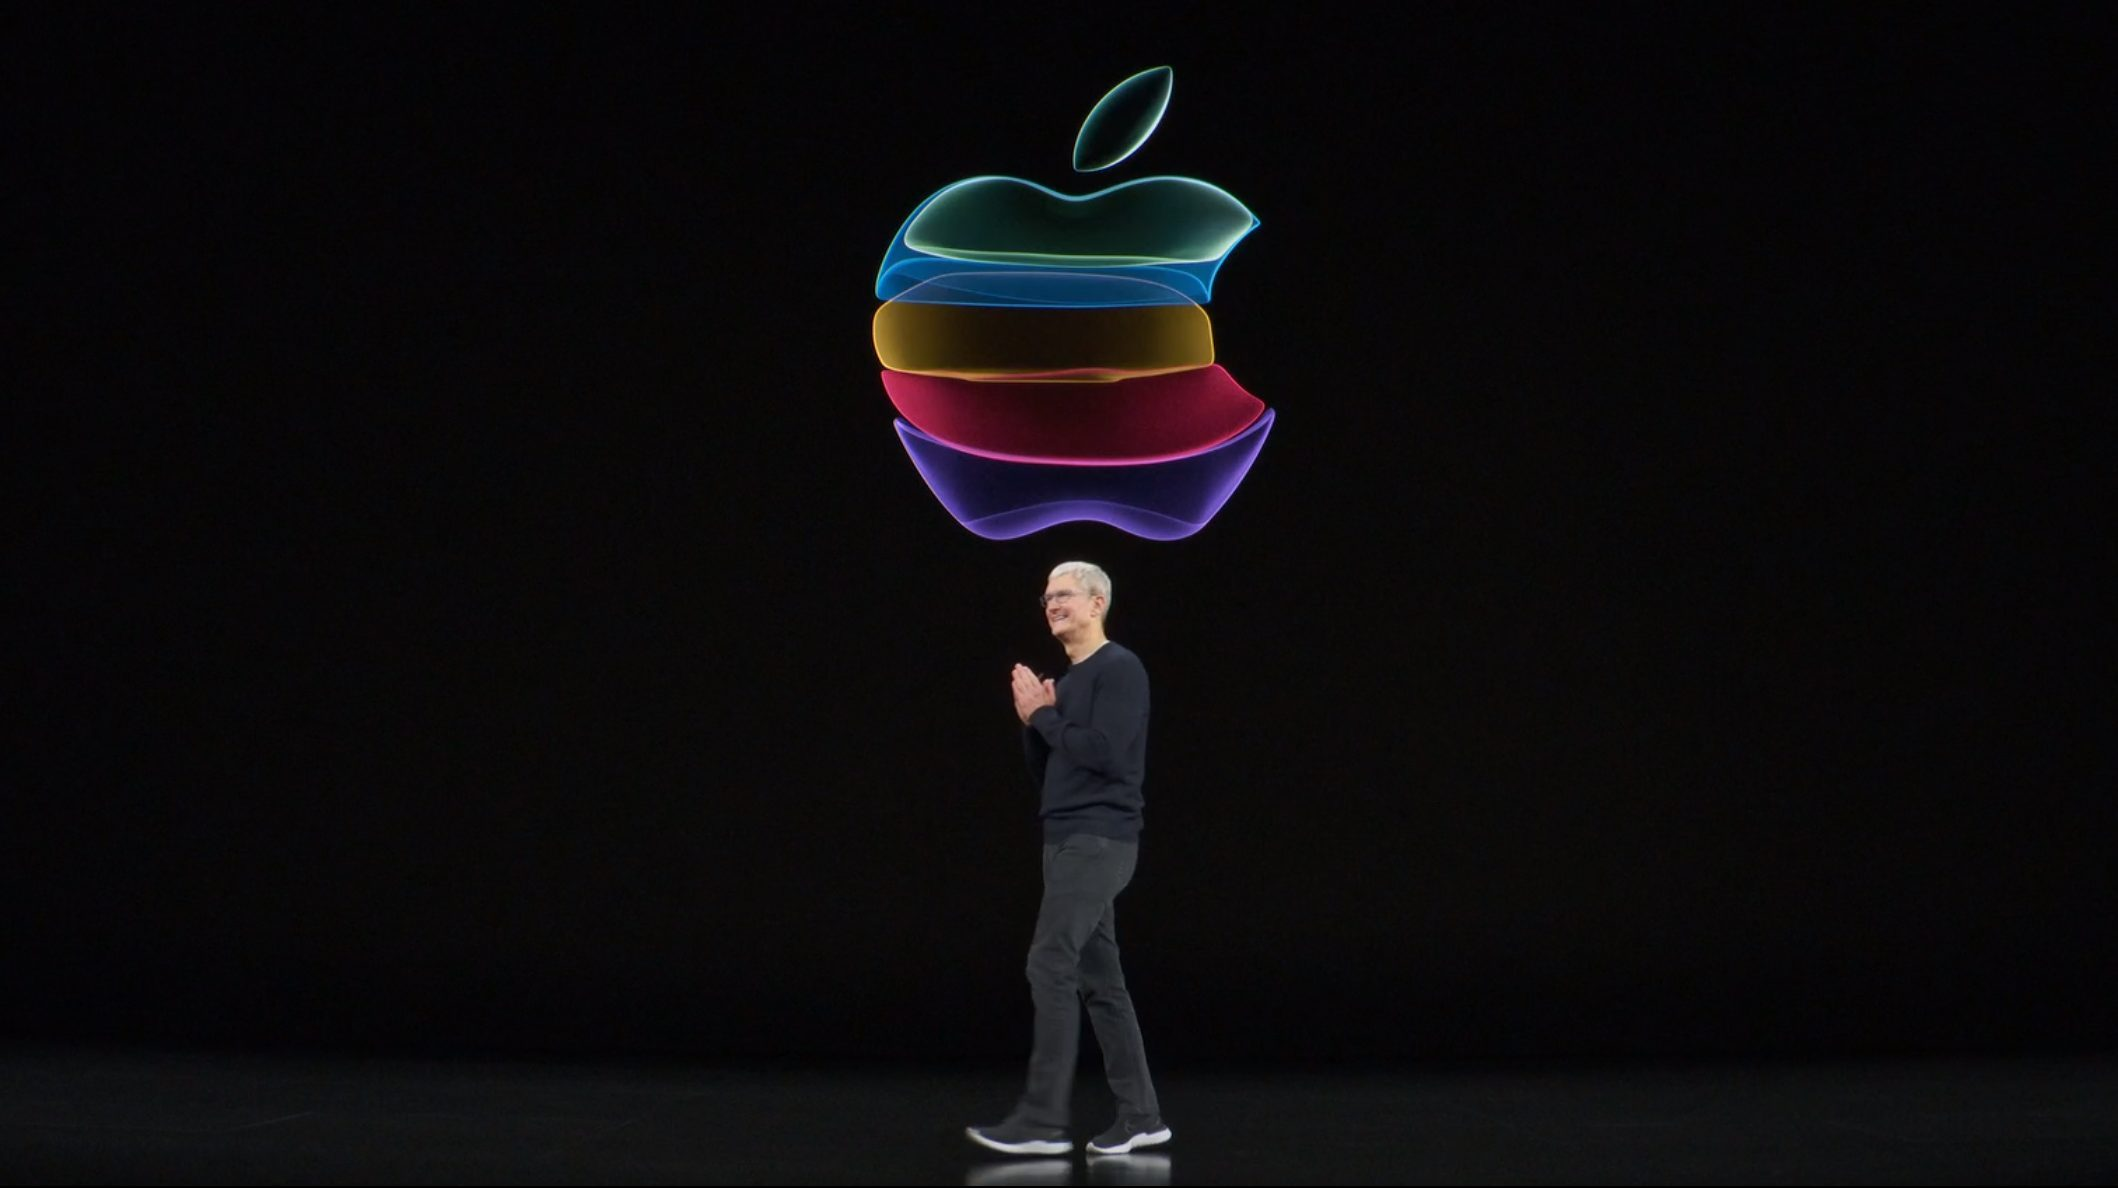 when is the next Apple event